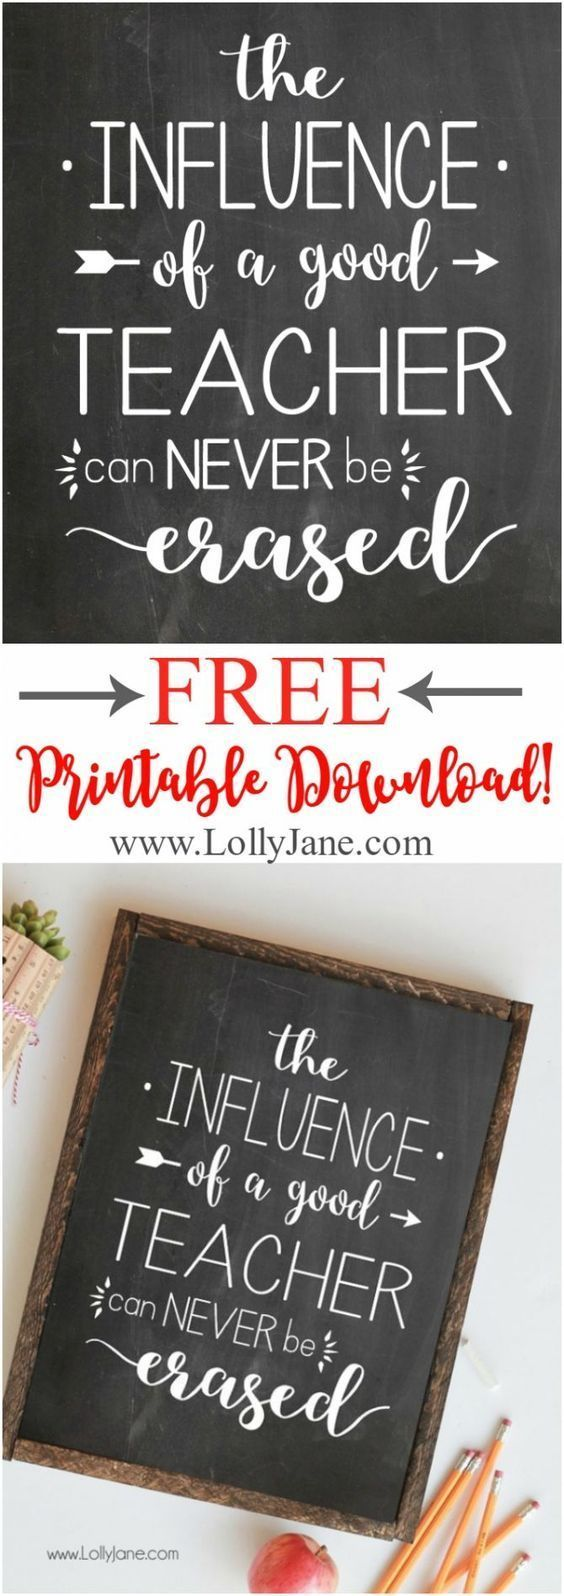 The Influence of a Good Teacher can Never be Erased free printable, perfect for a teacher appreciation gift! Just print off and frame! Free teacher appreciation printable! Easy teacher thank you gift! #appreciationgifts